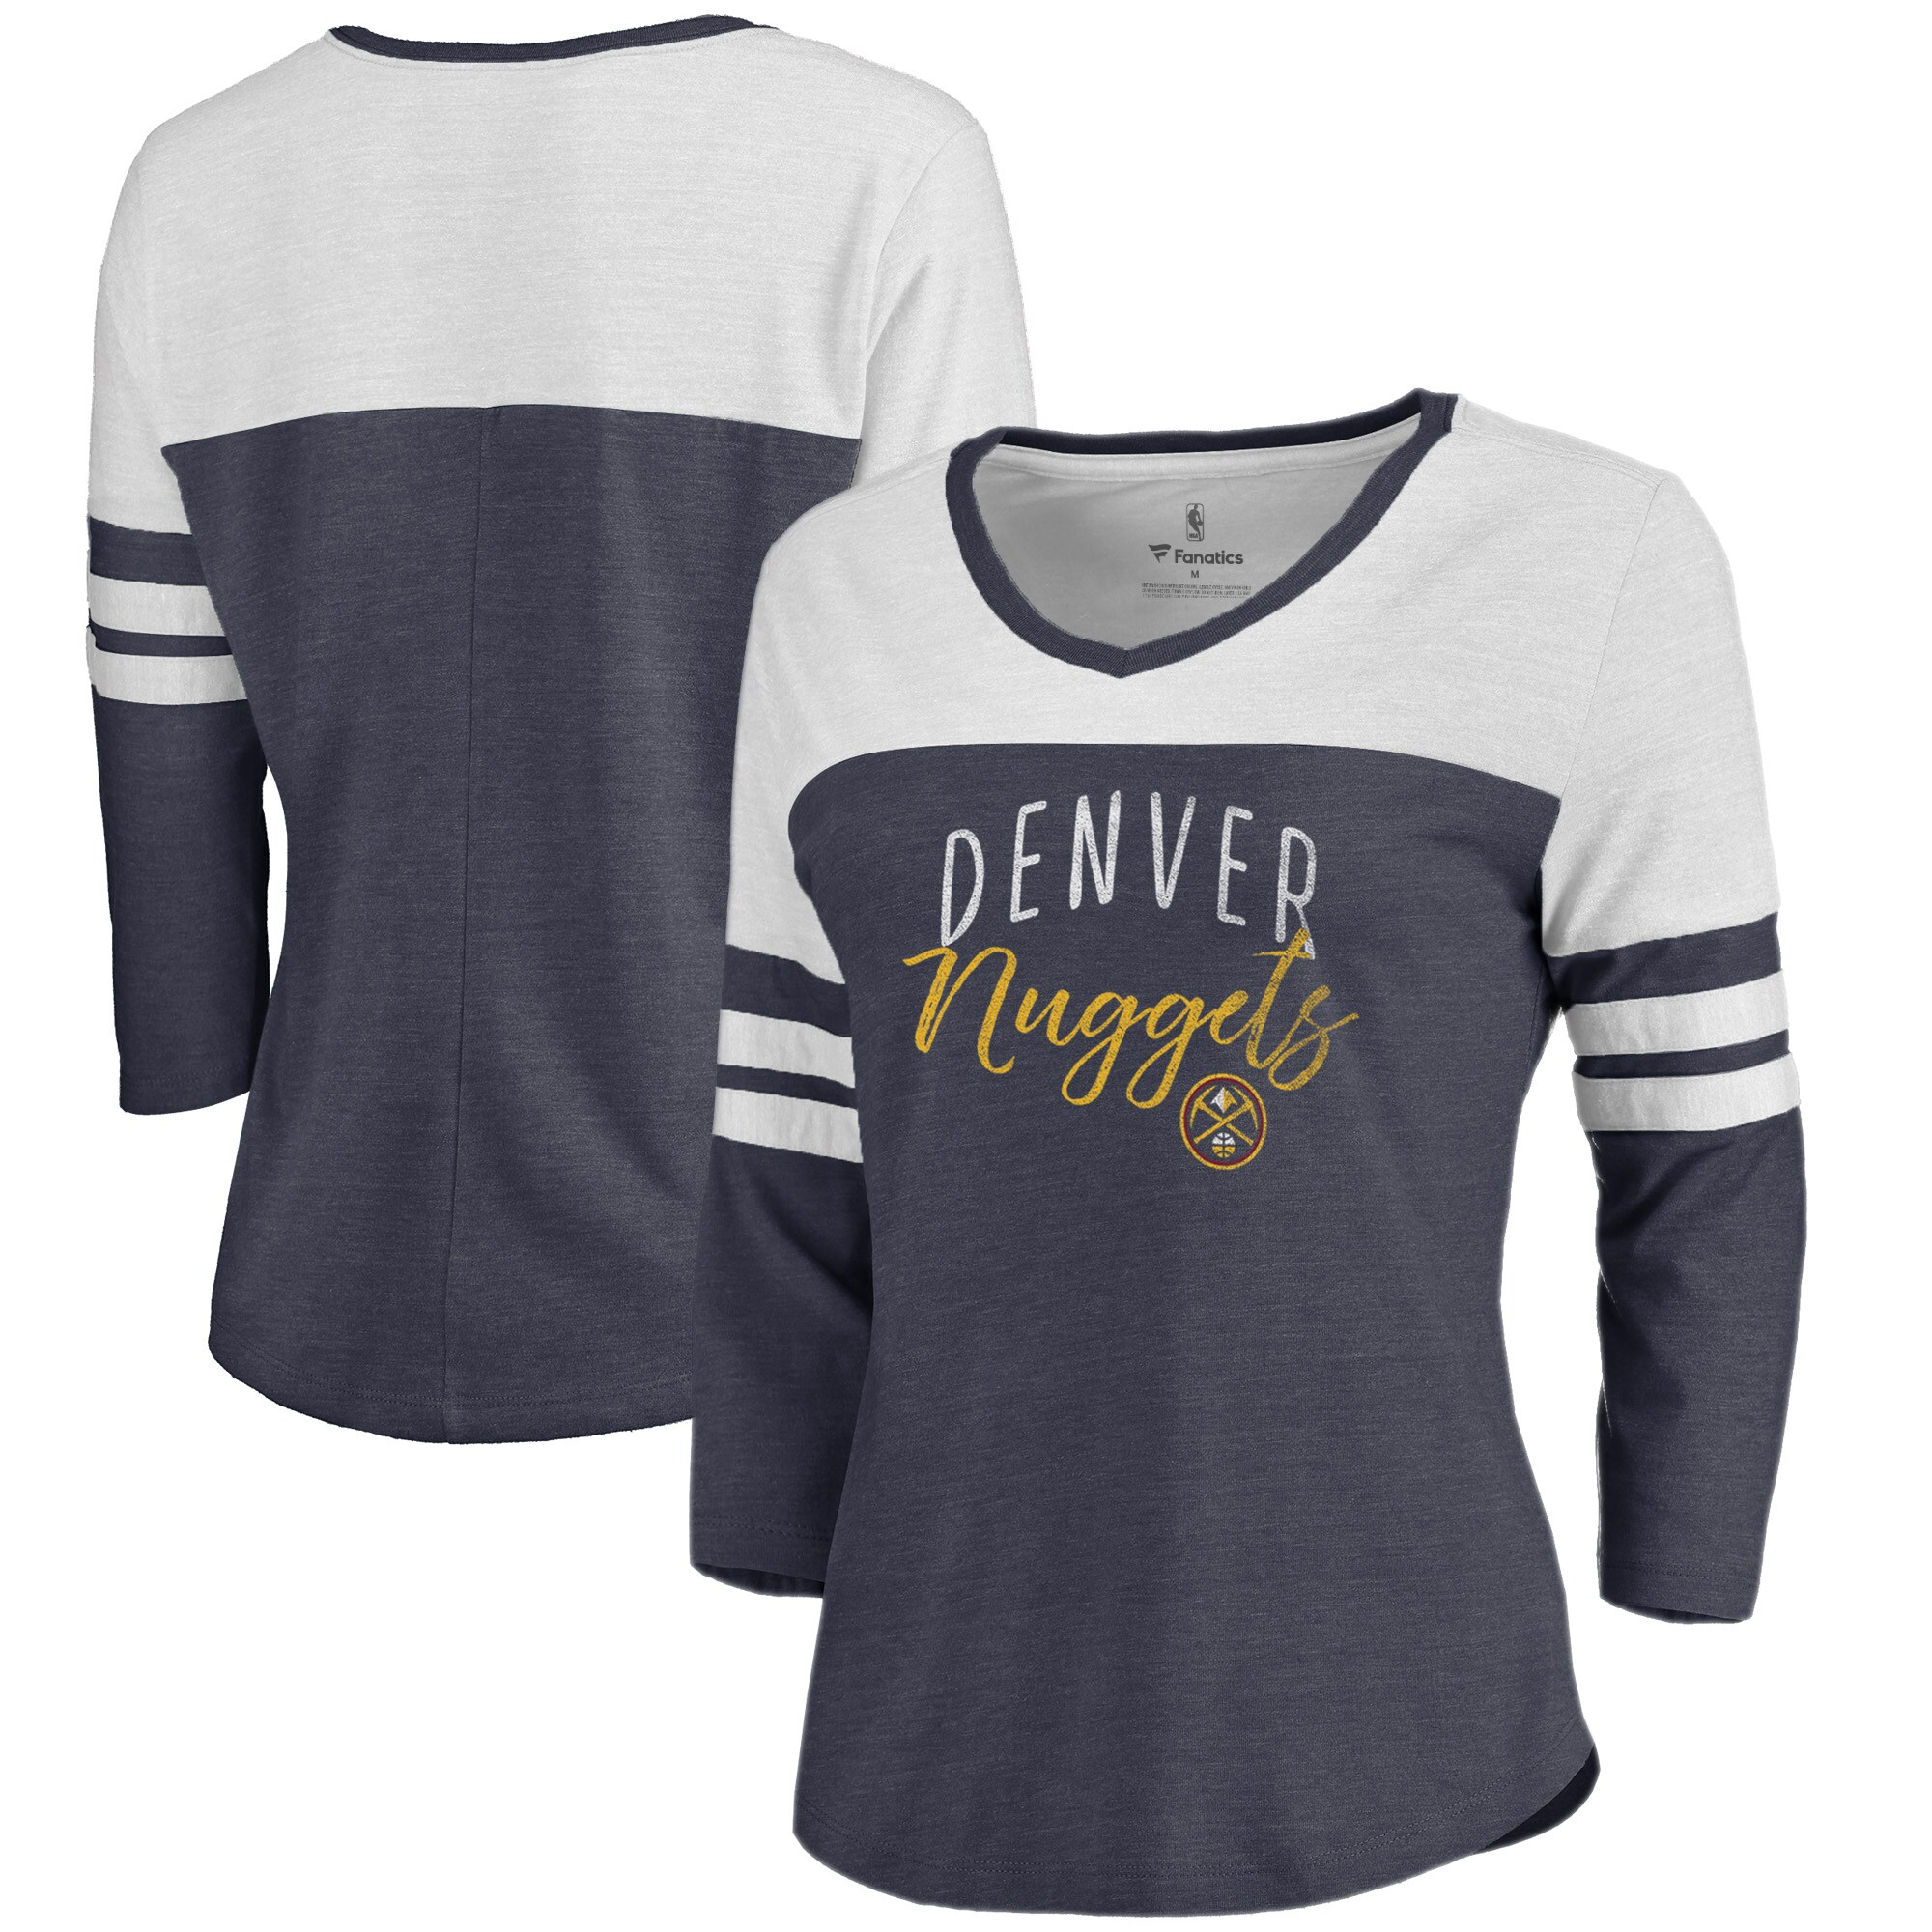 Denver Nuggets Fanatics Branded Women's Graceful Color Block Tri-Blend 3/4-Sleeve Raglan V-Neck T-Shirt - Navy